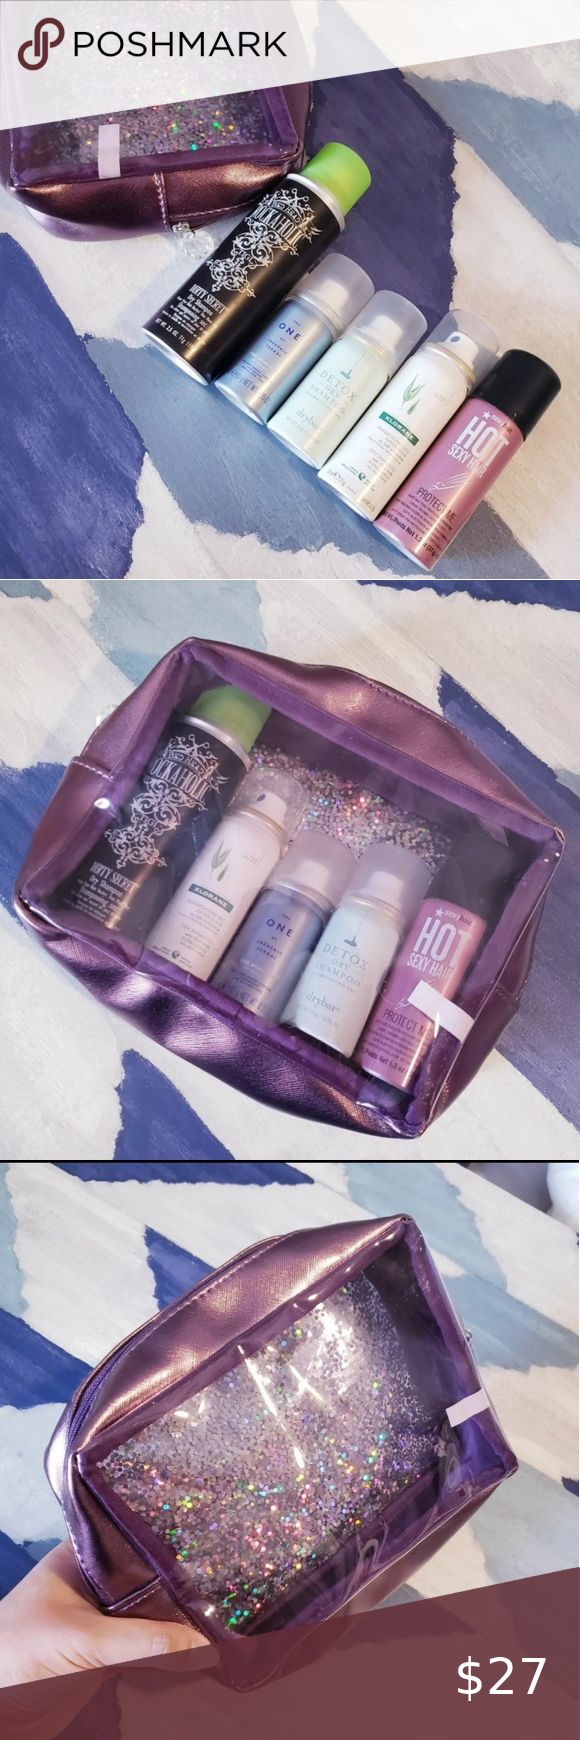 Dry Shampoo Bundle And Clear Glitter Bag Includes 5 New Products And A Really Cool Purple See Through Glitter Bag Glitter Bag Dry Shampoo Klorane Dry Shampoo